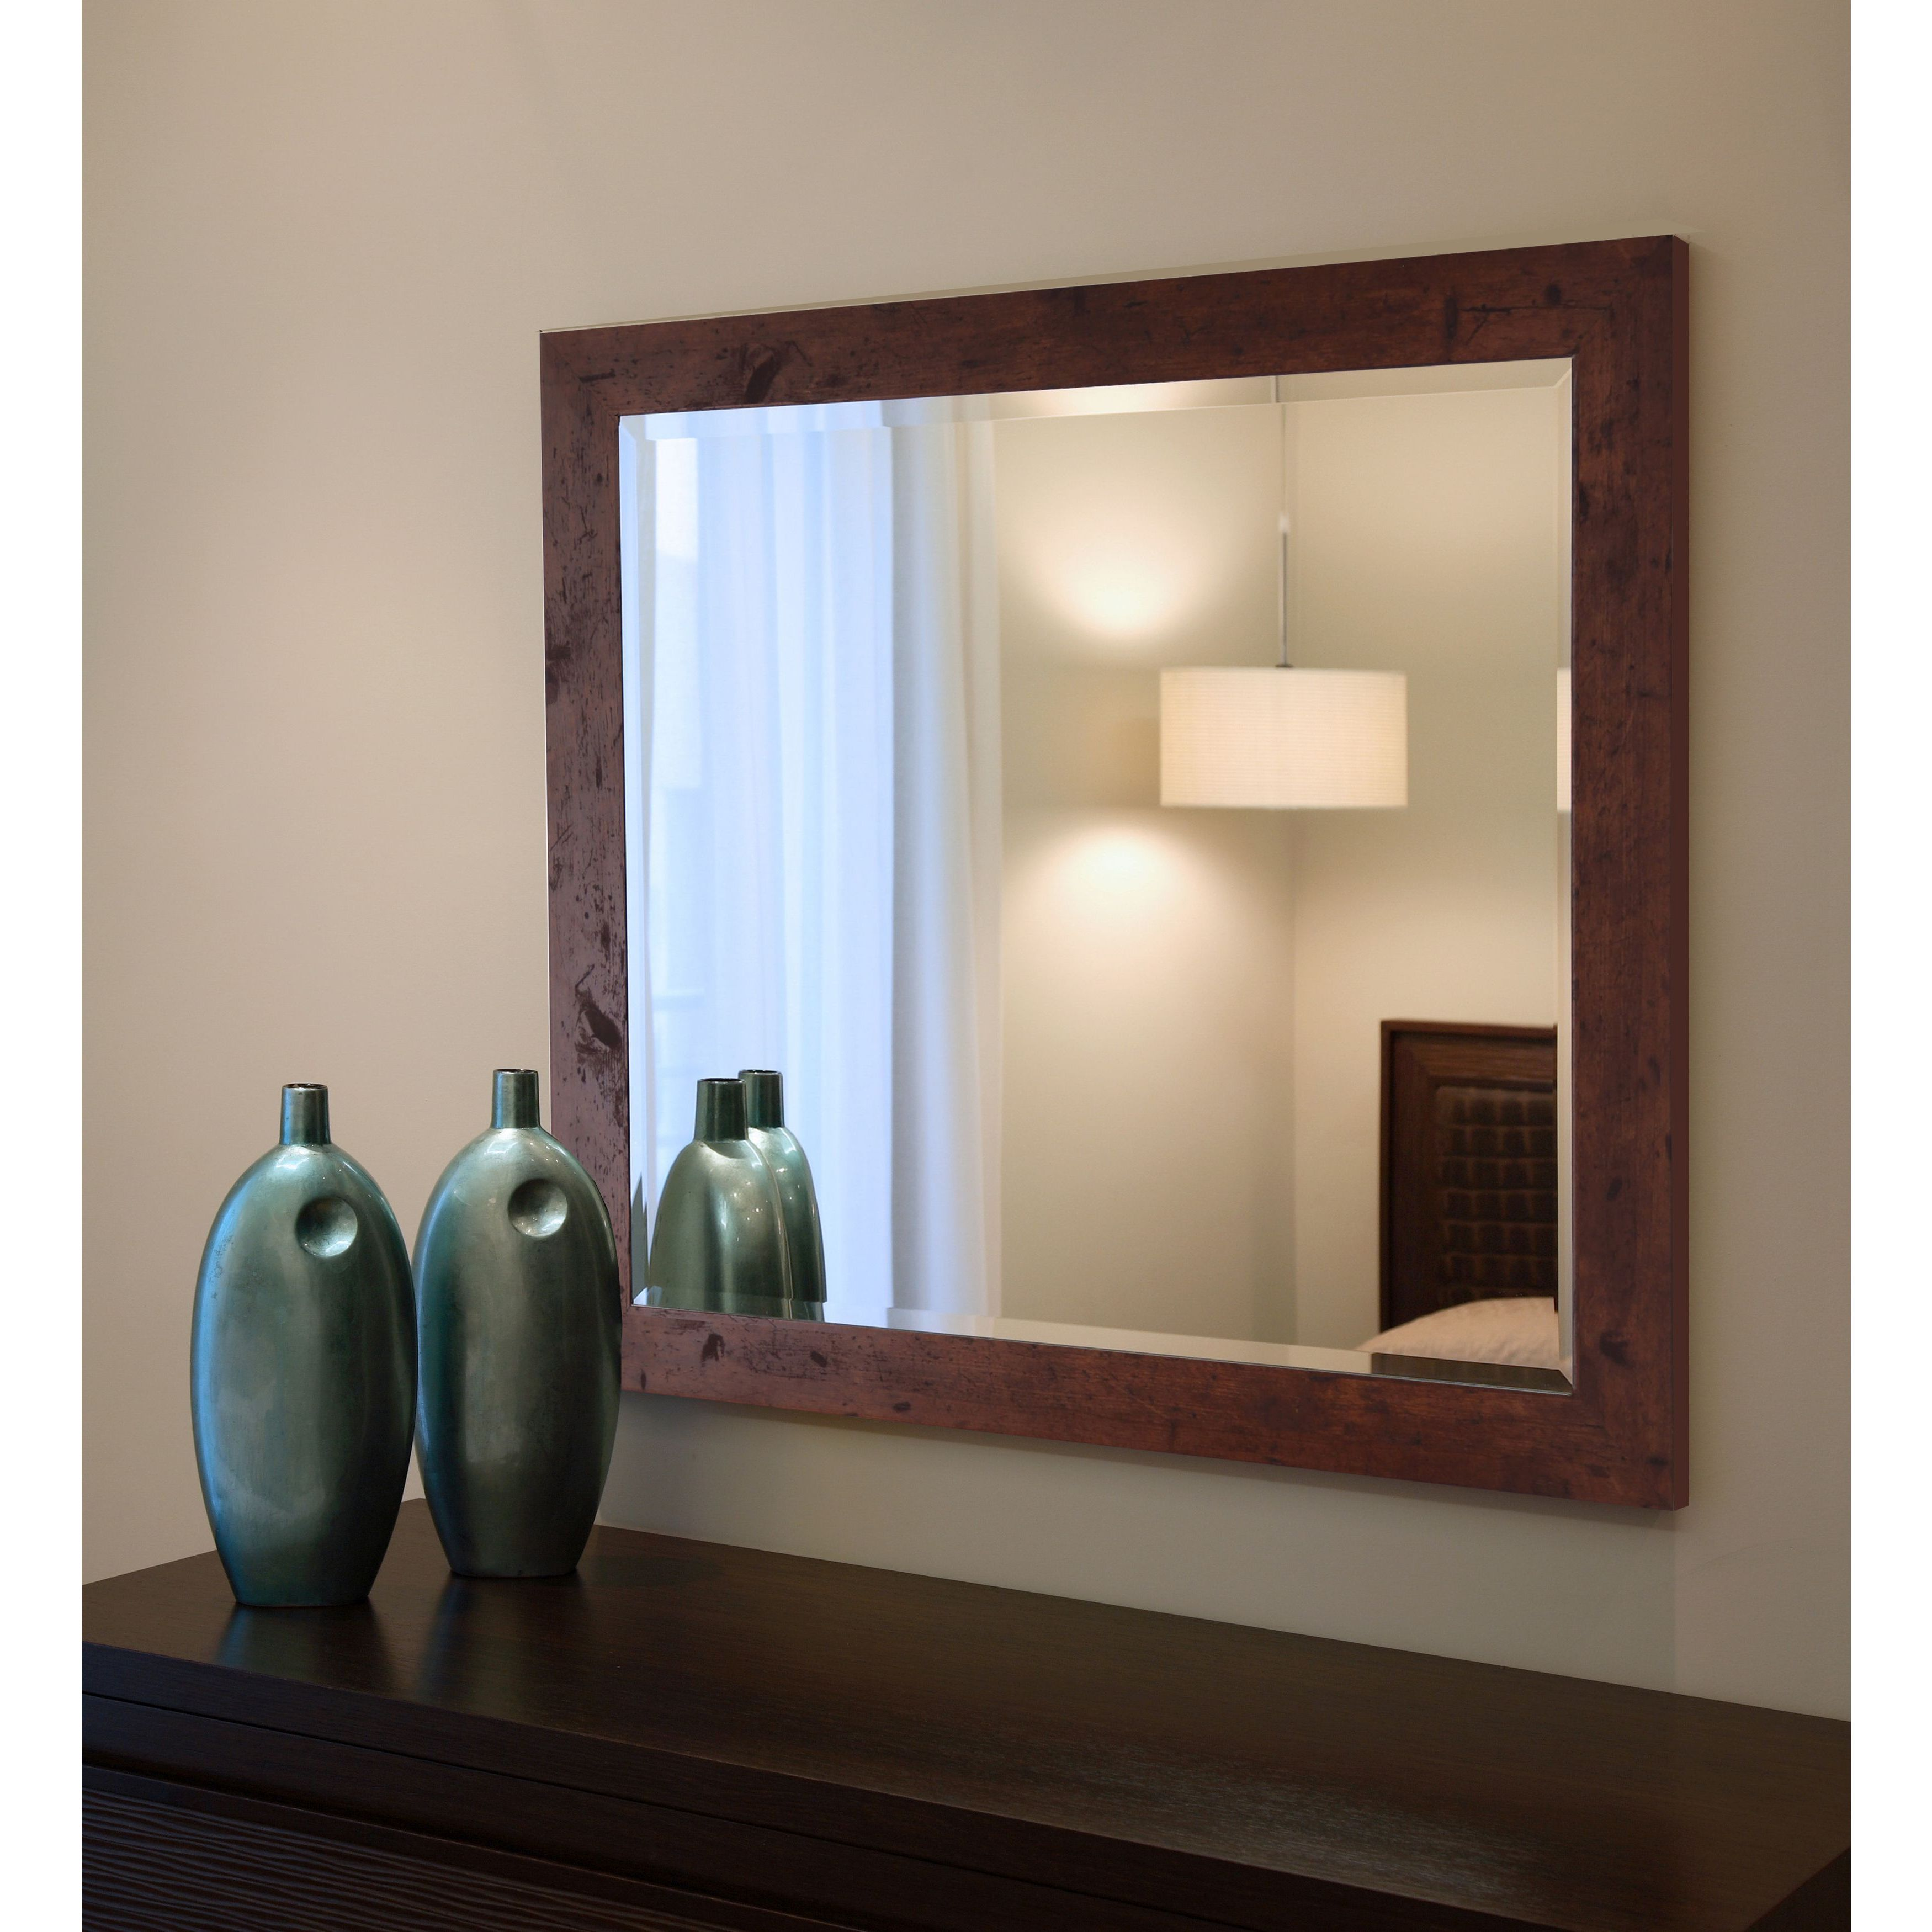 American Made Rayne Rustic Dark Walnut Wall/ Vanity Mirror - Dark Walnut (32.5 X 38.5)